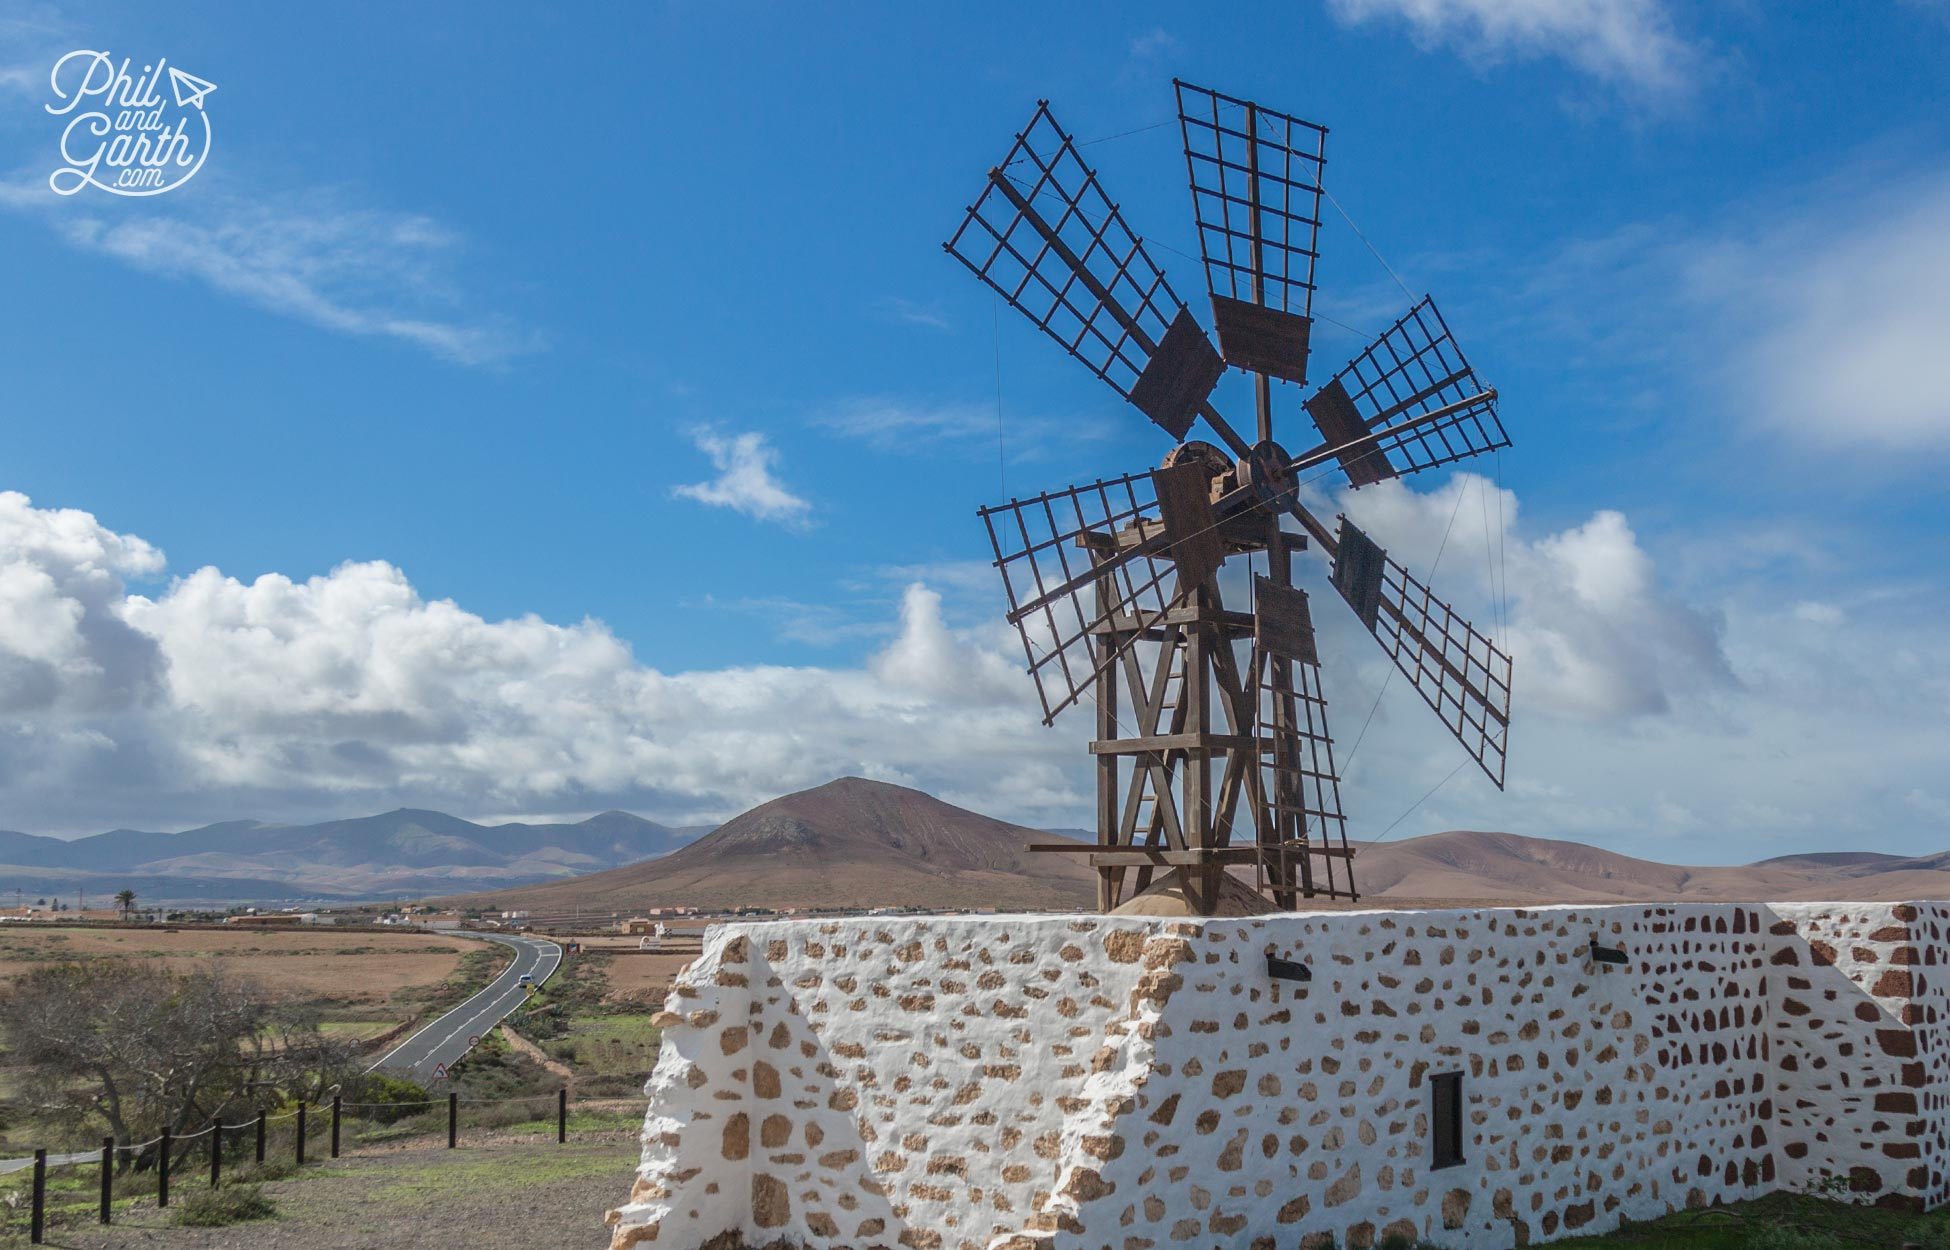 Old flour windmills are dotted all over Fuerteventura